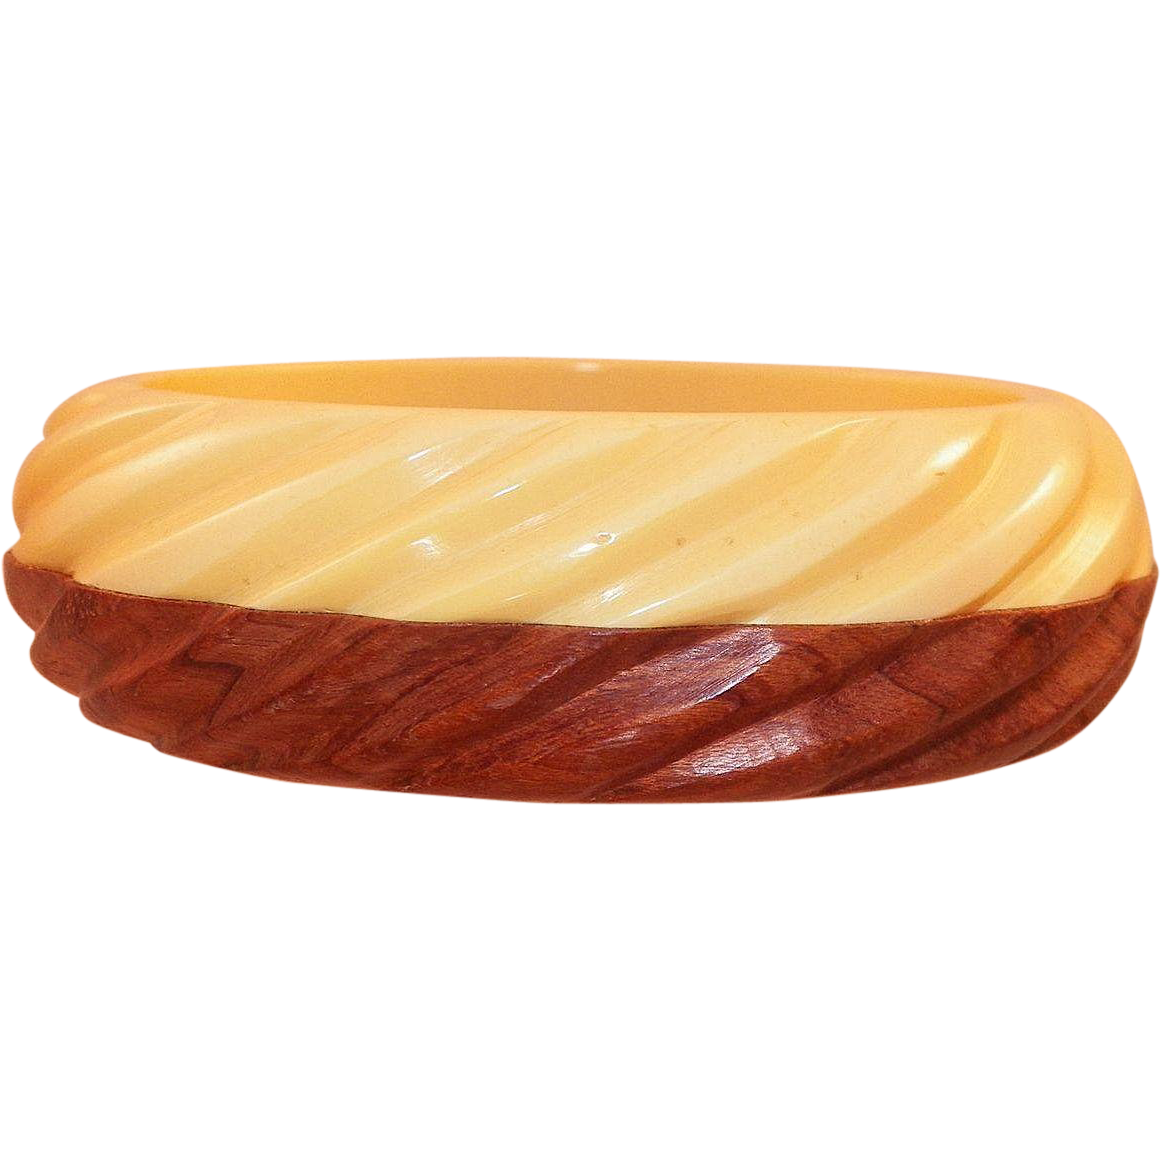 Vintage Carved Bakelite and Wood Cream Corn Bangle Bracelet